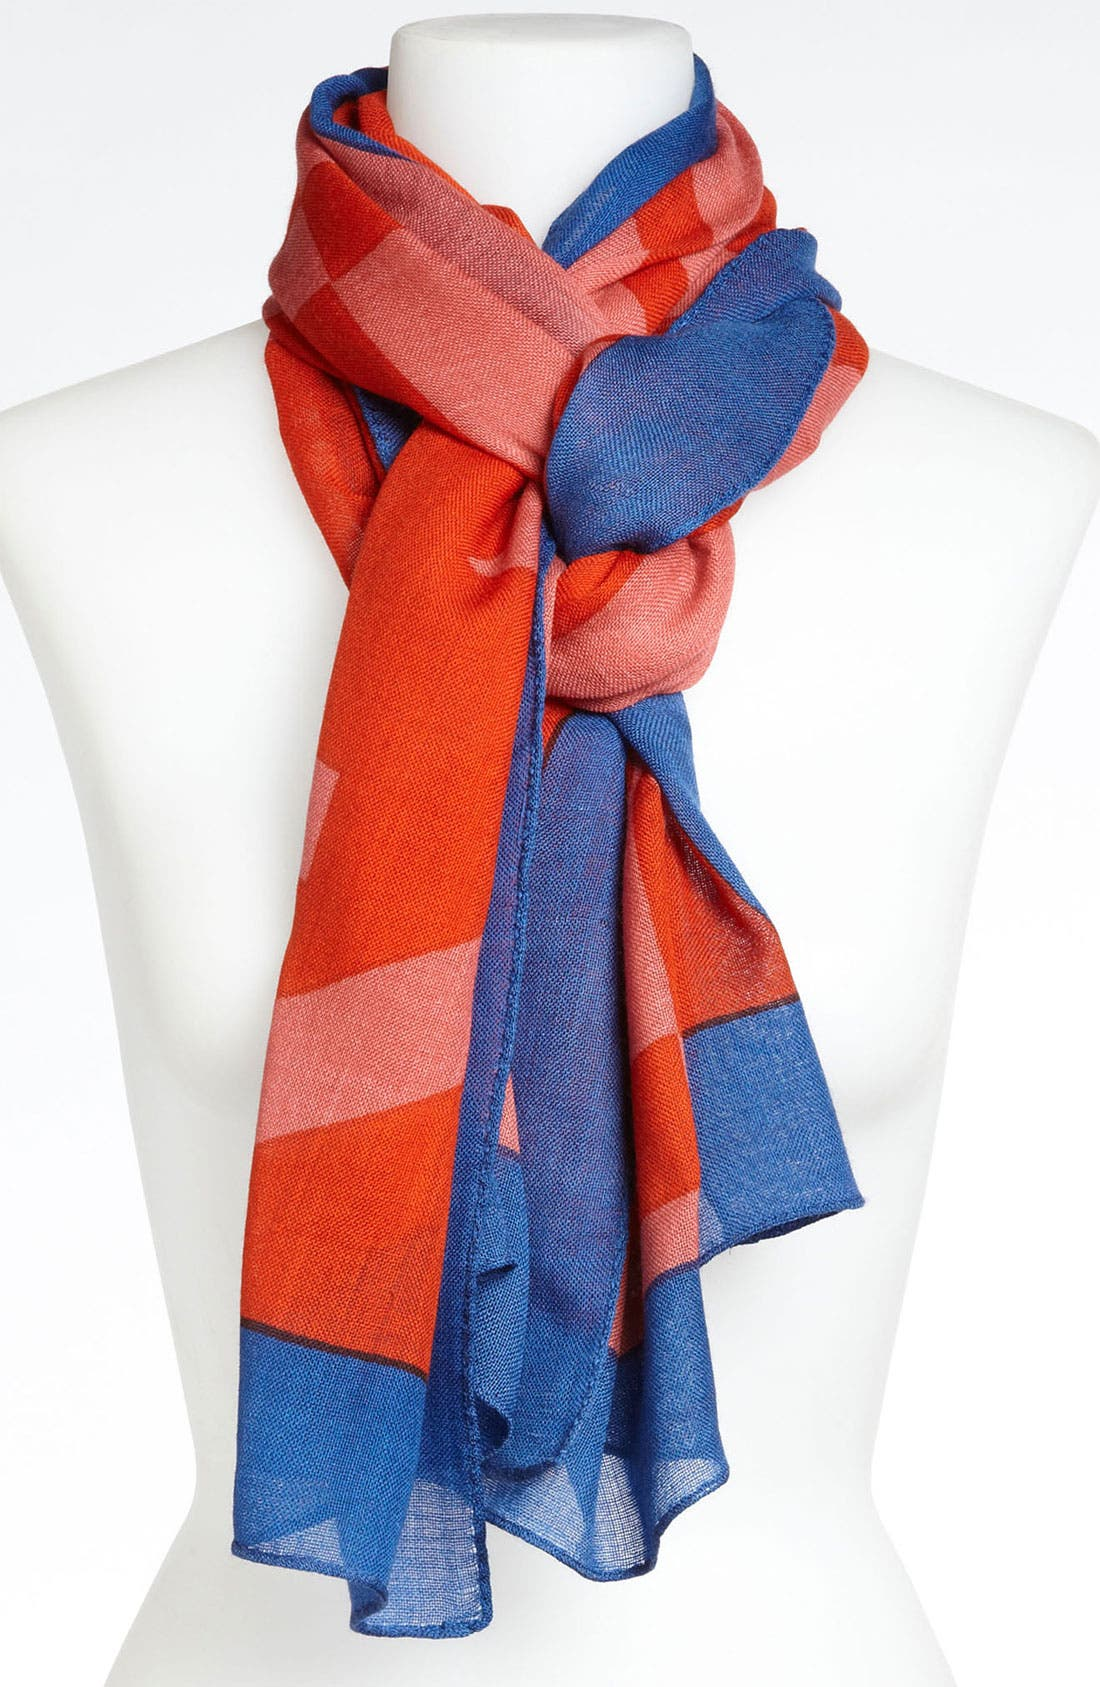 Alternate Image 1 Selected - Tory Burch 'Reva' Print Wool Scarf